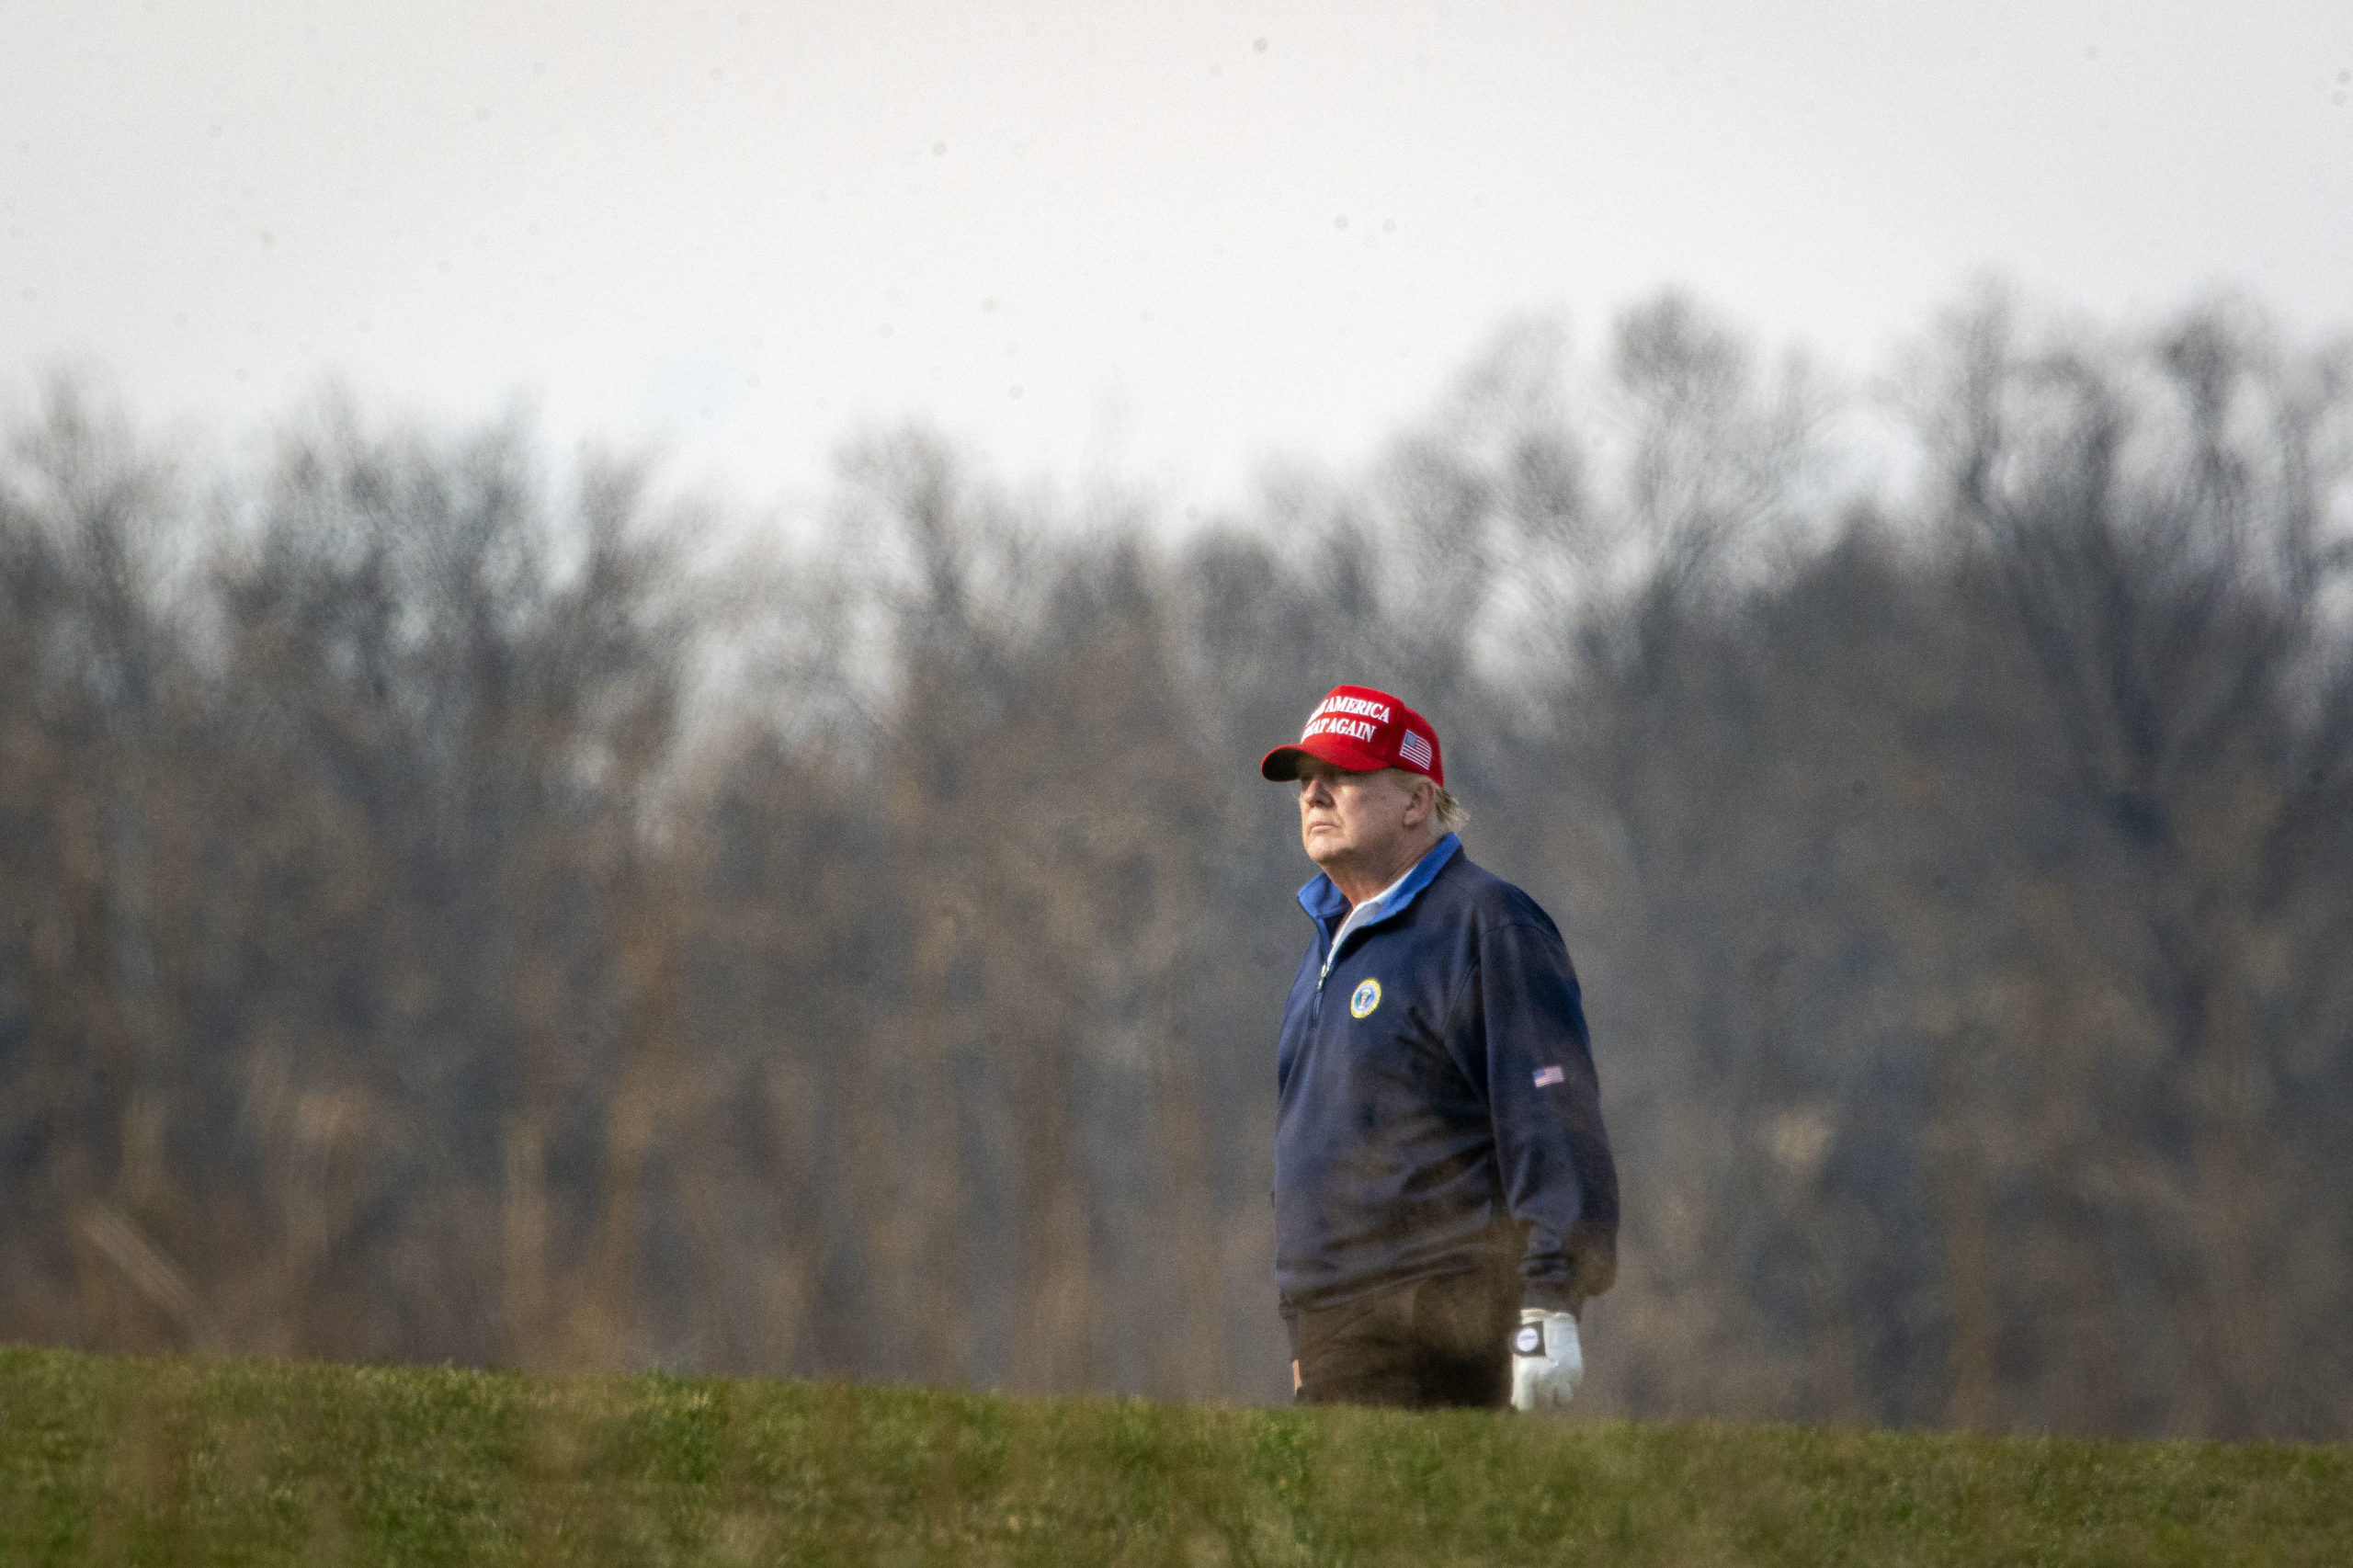 STERLING, VA - DECEMBER 13: U.S. President Donald Trump golfs at Trump National Golf Club on December 13, 2020 in Sterling, Virginia. (Photo by Al Drago/Getty Images)